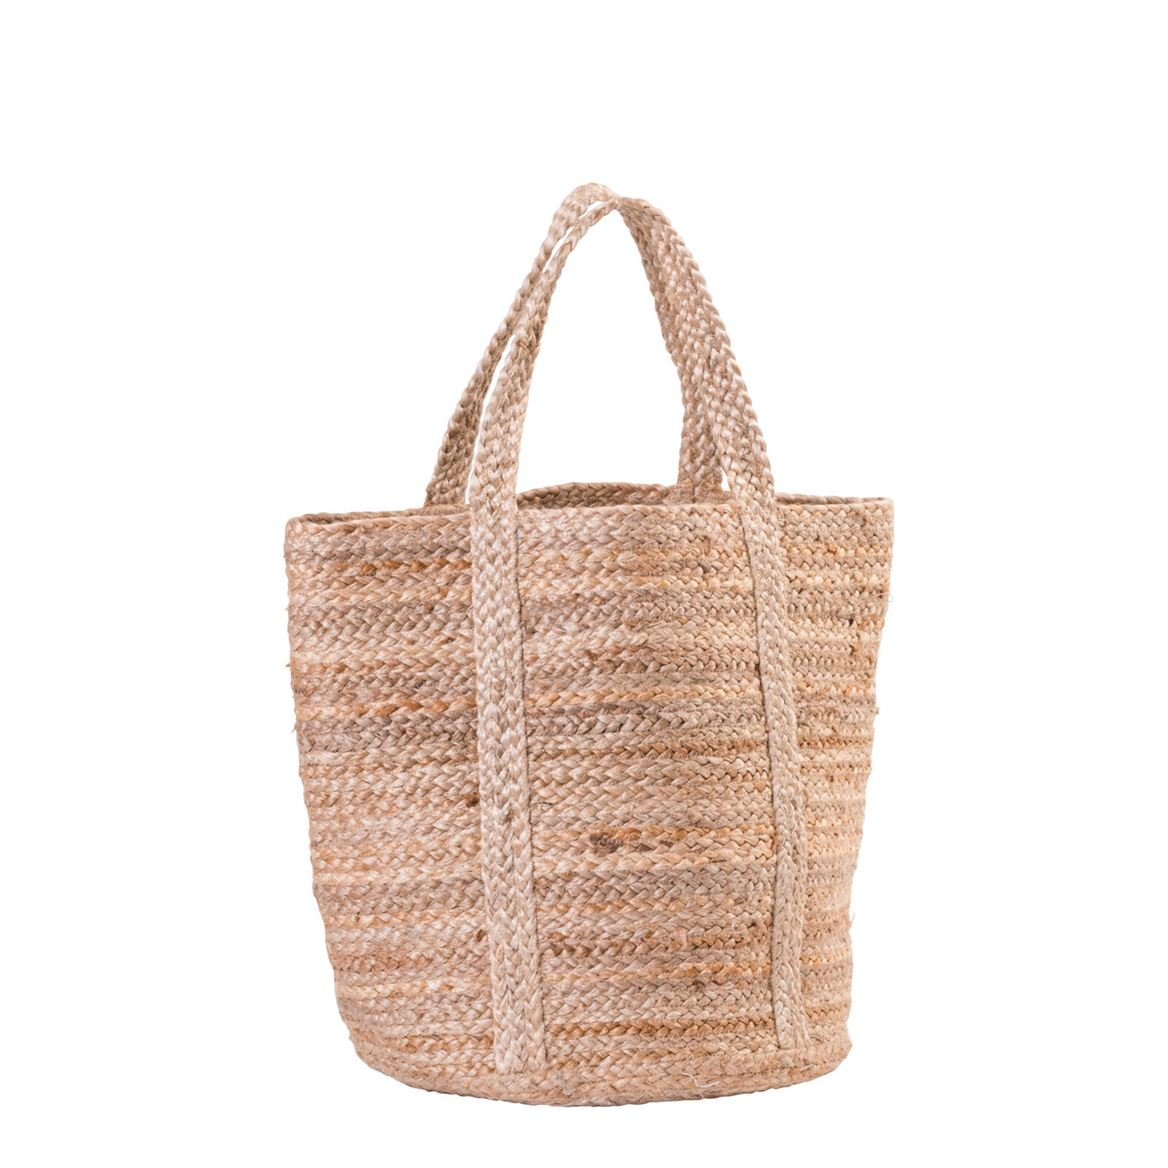 BRAID Tas naturel H 52 x B 40 cm_braid-tas-naturel-h-52-x-b-40-cm